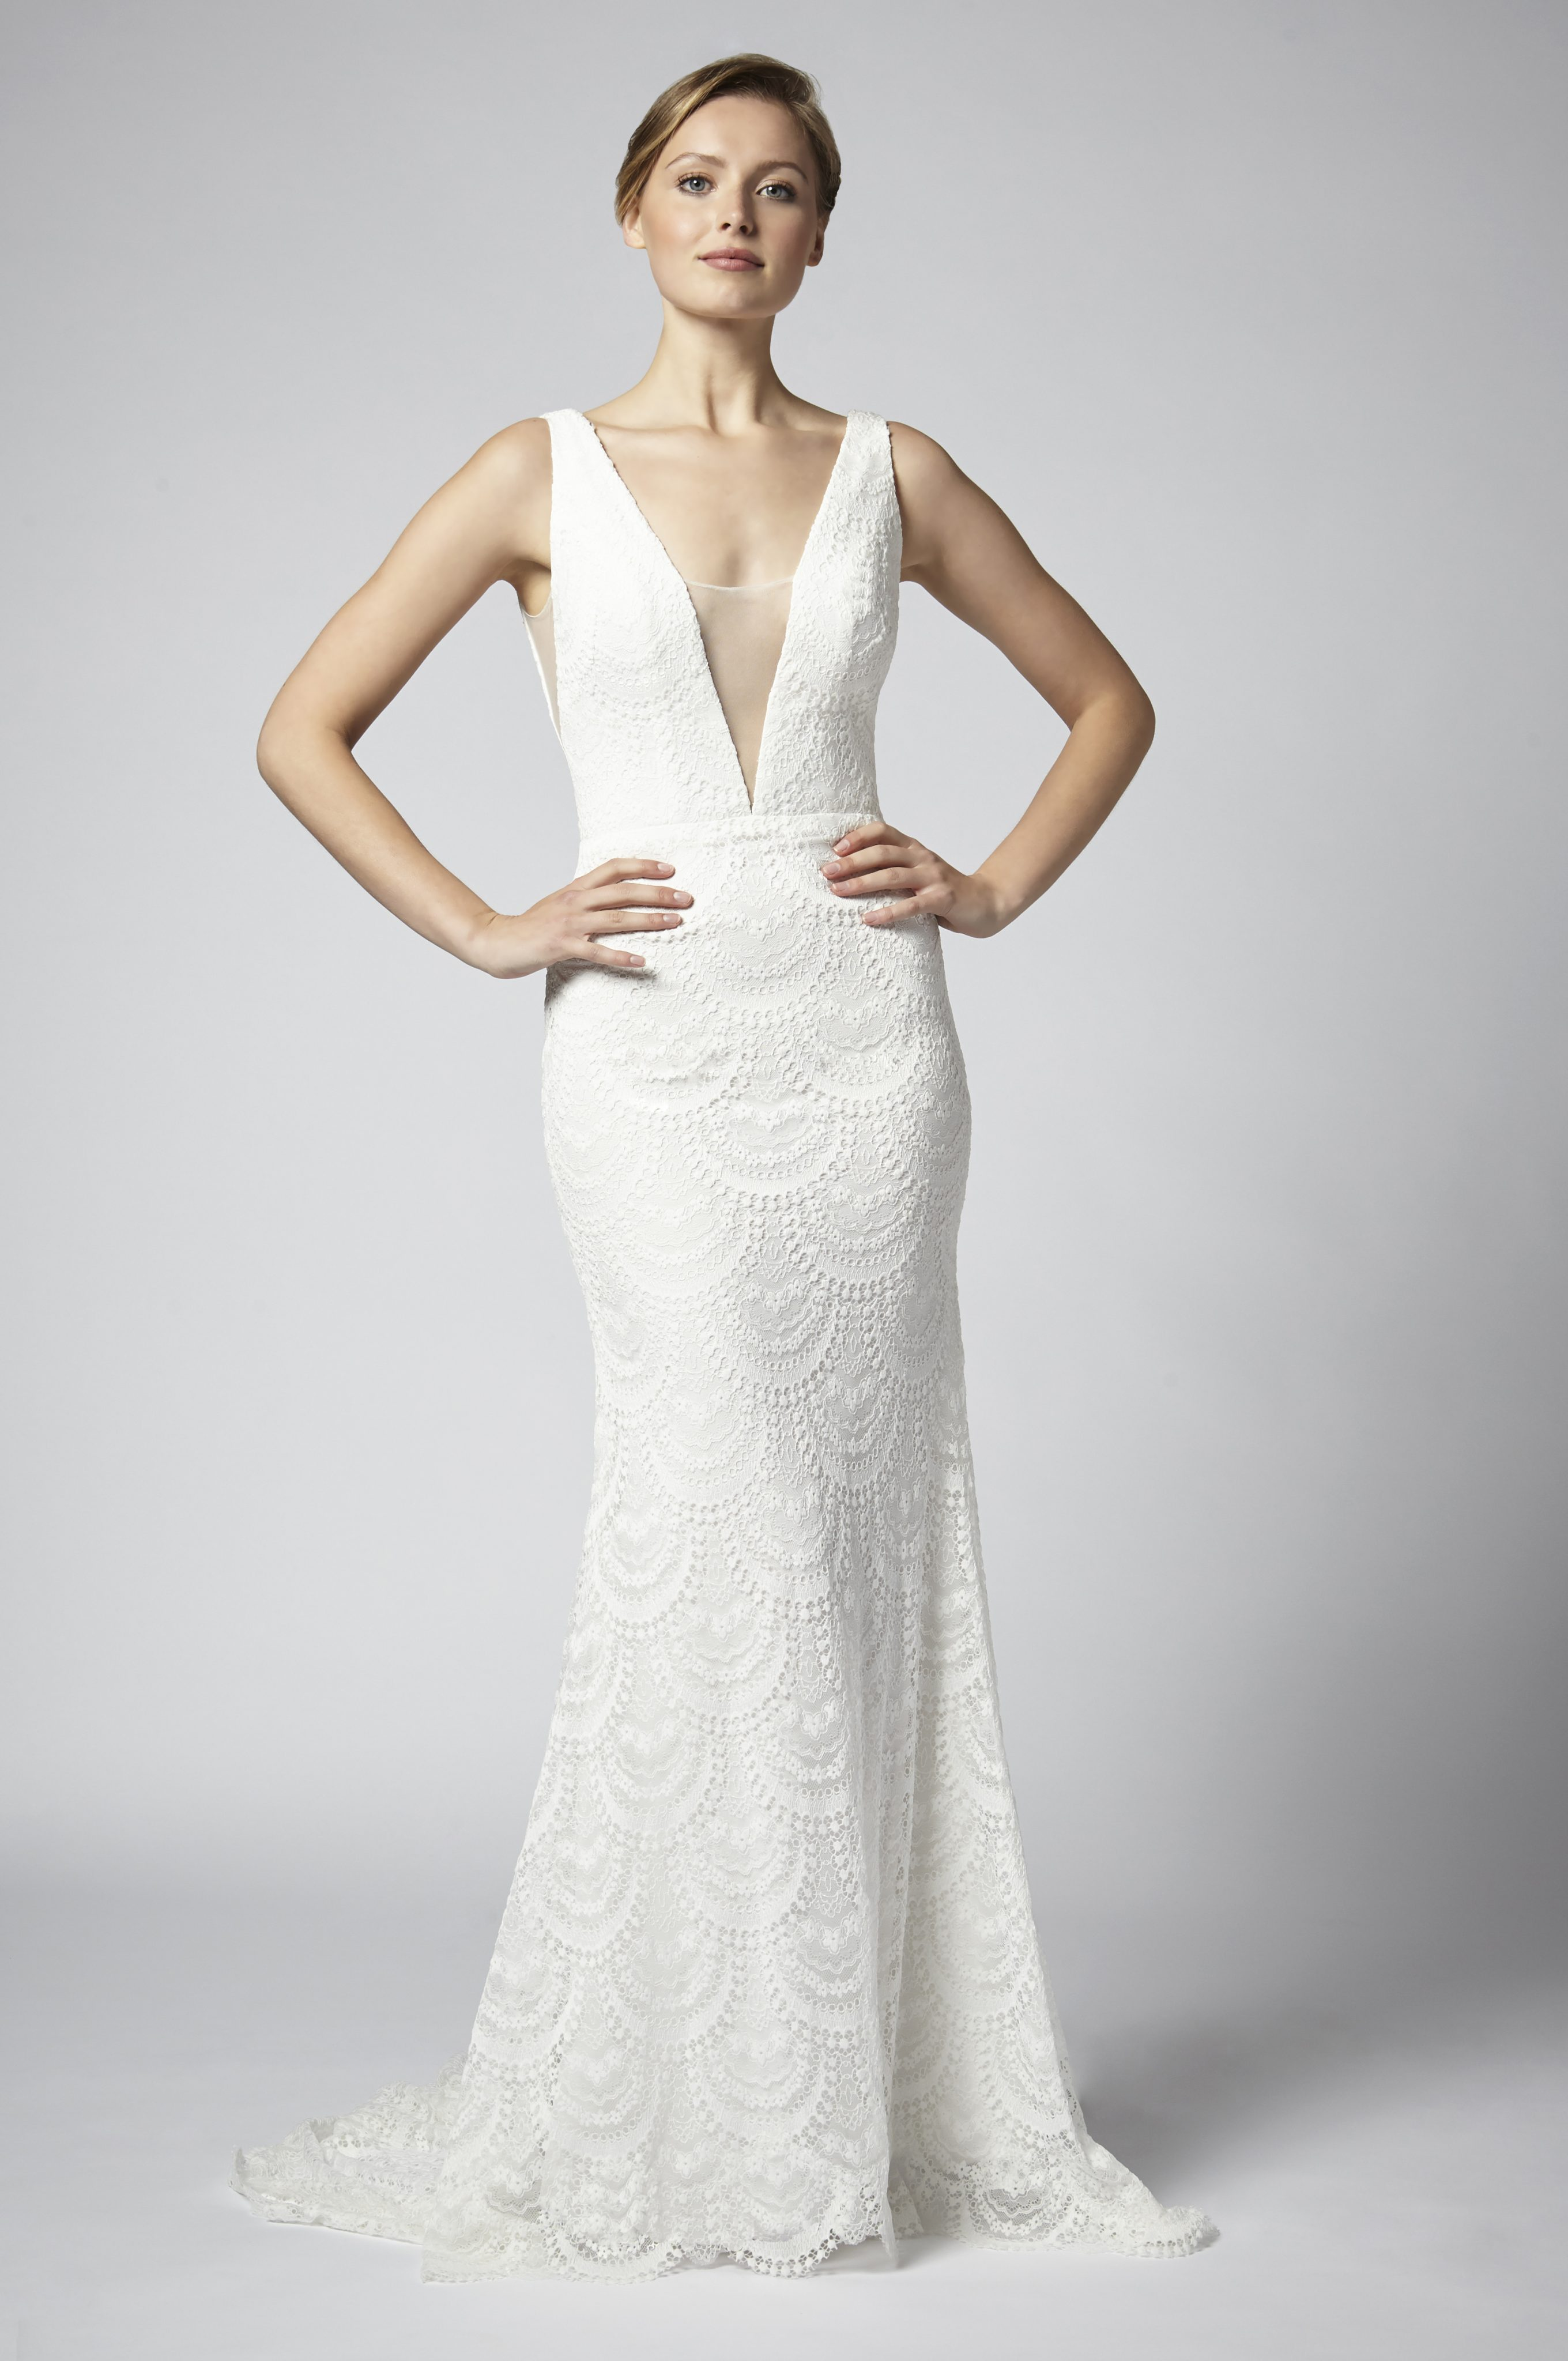 Lace Sheath Wedding Dress With Deep V Neckline And Nude Netting ...